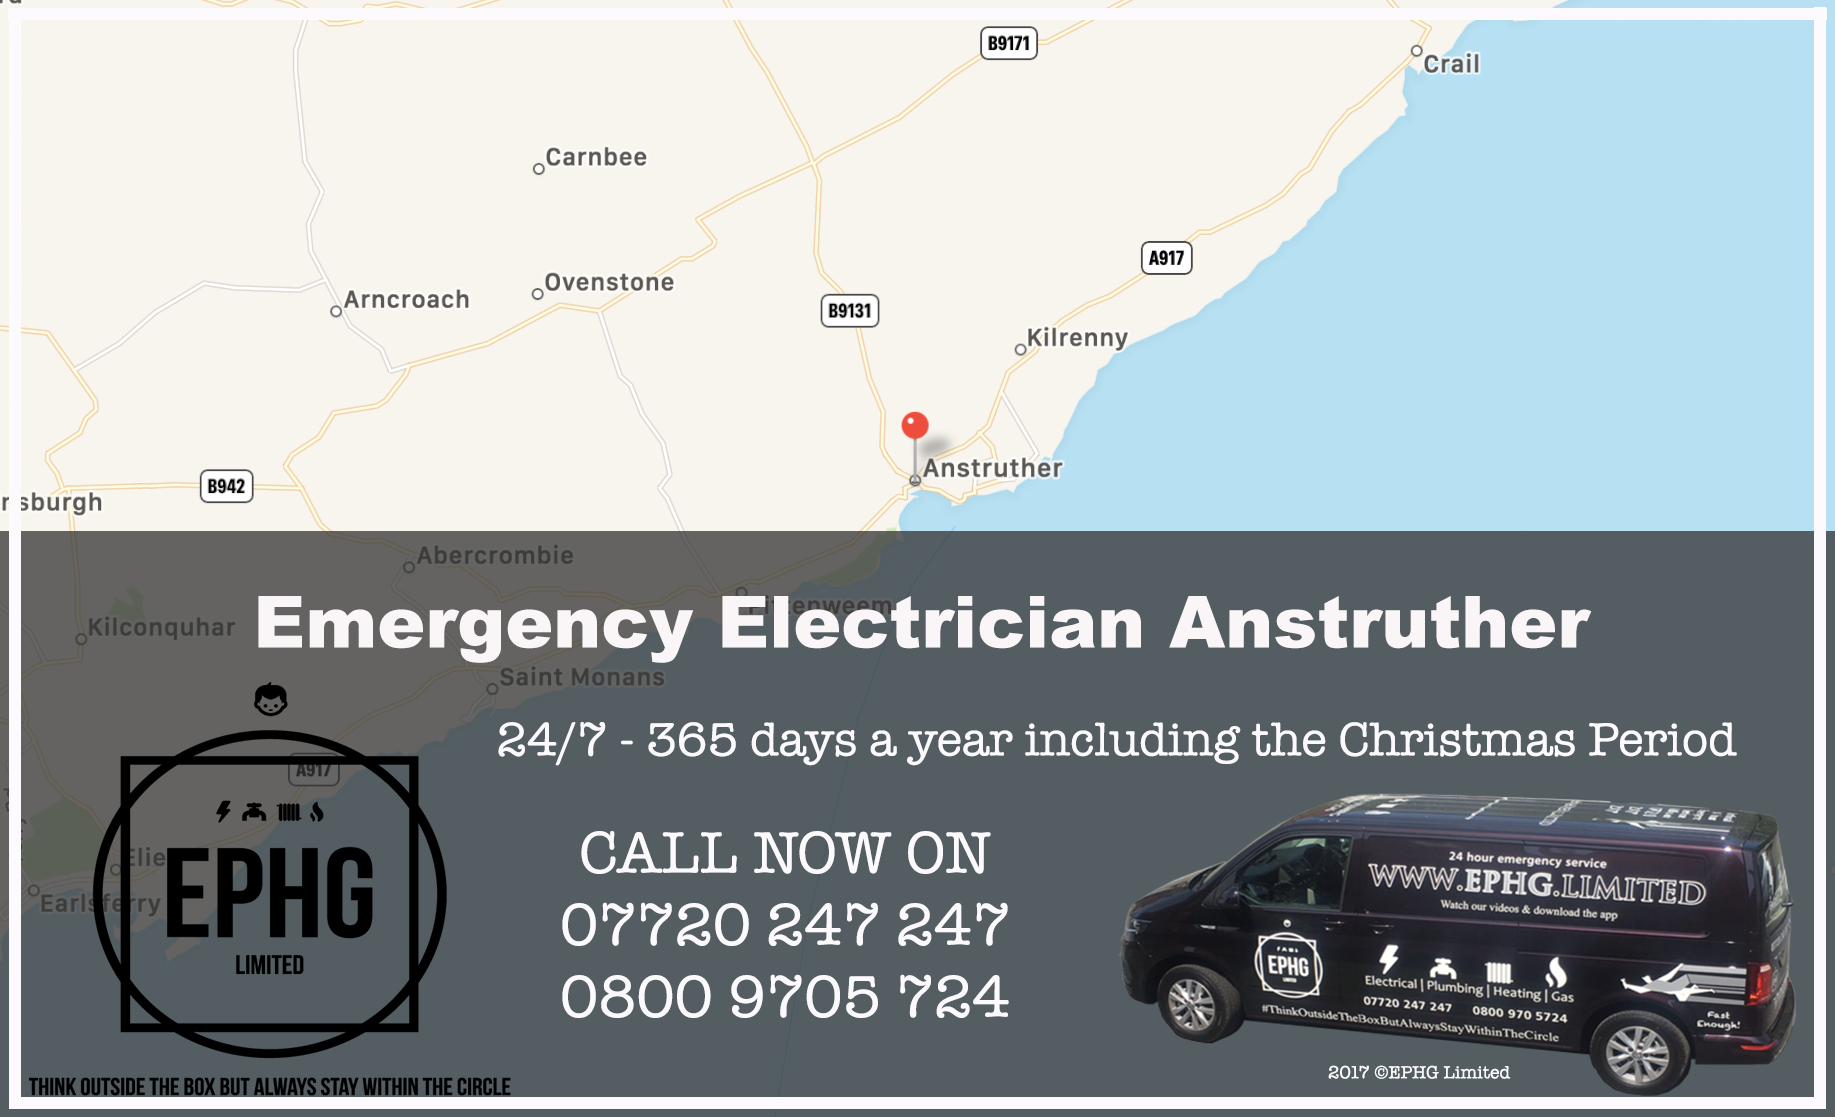 Emergency Electrician Anstruther